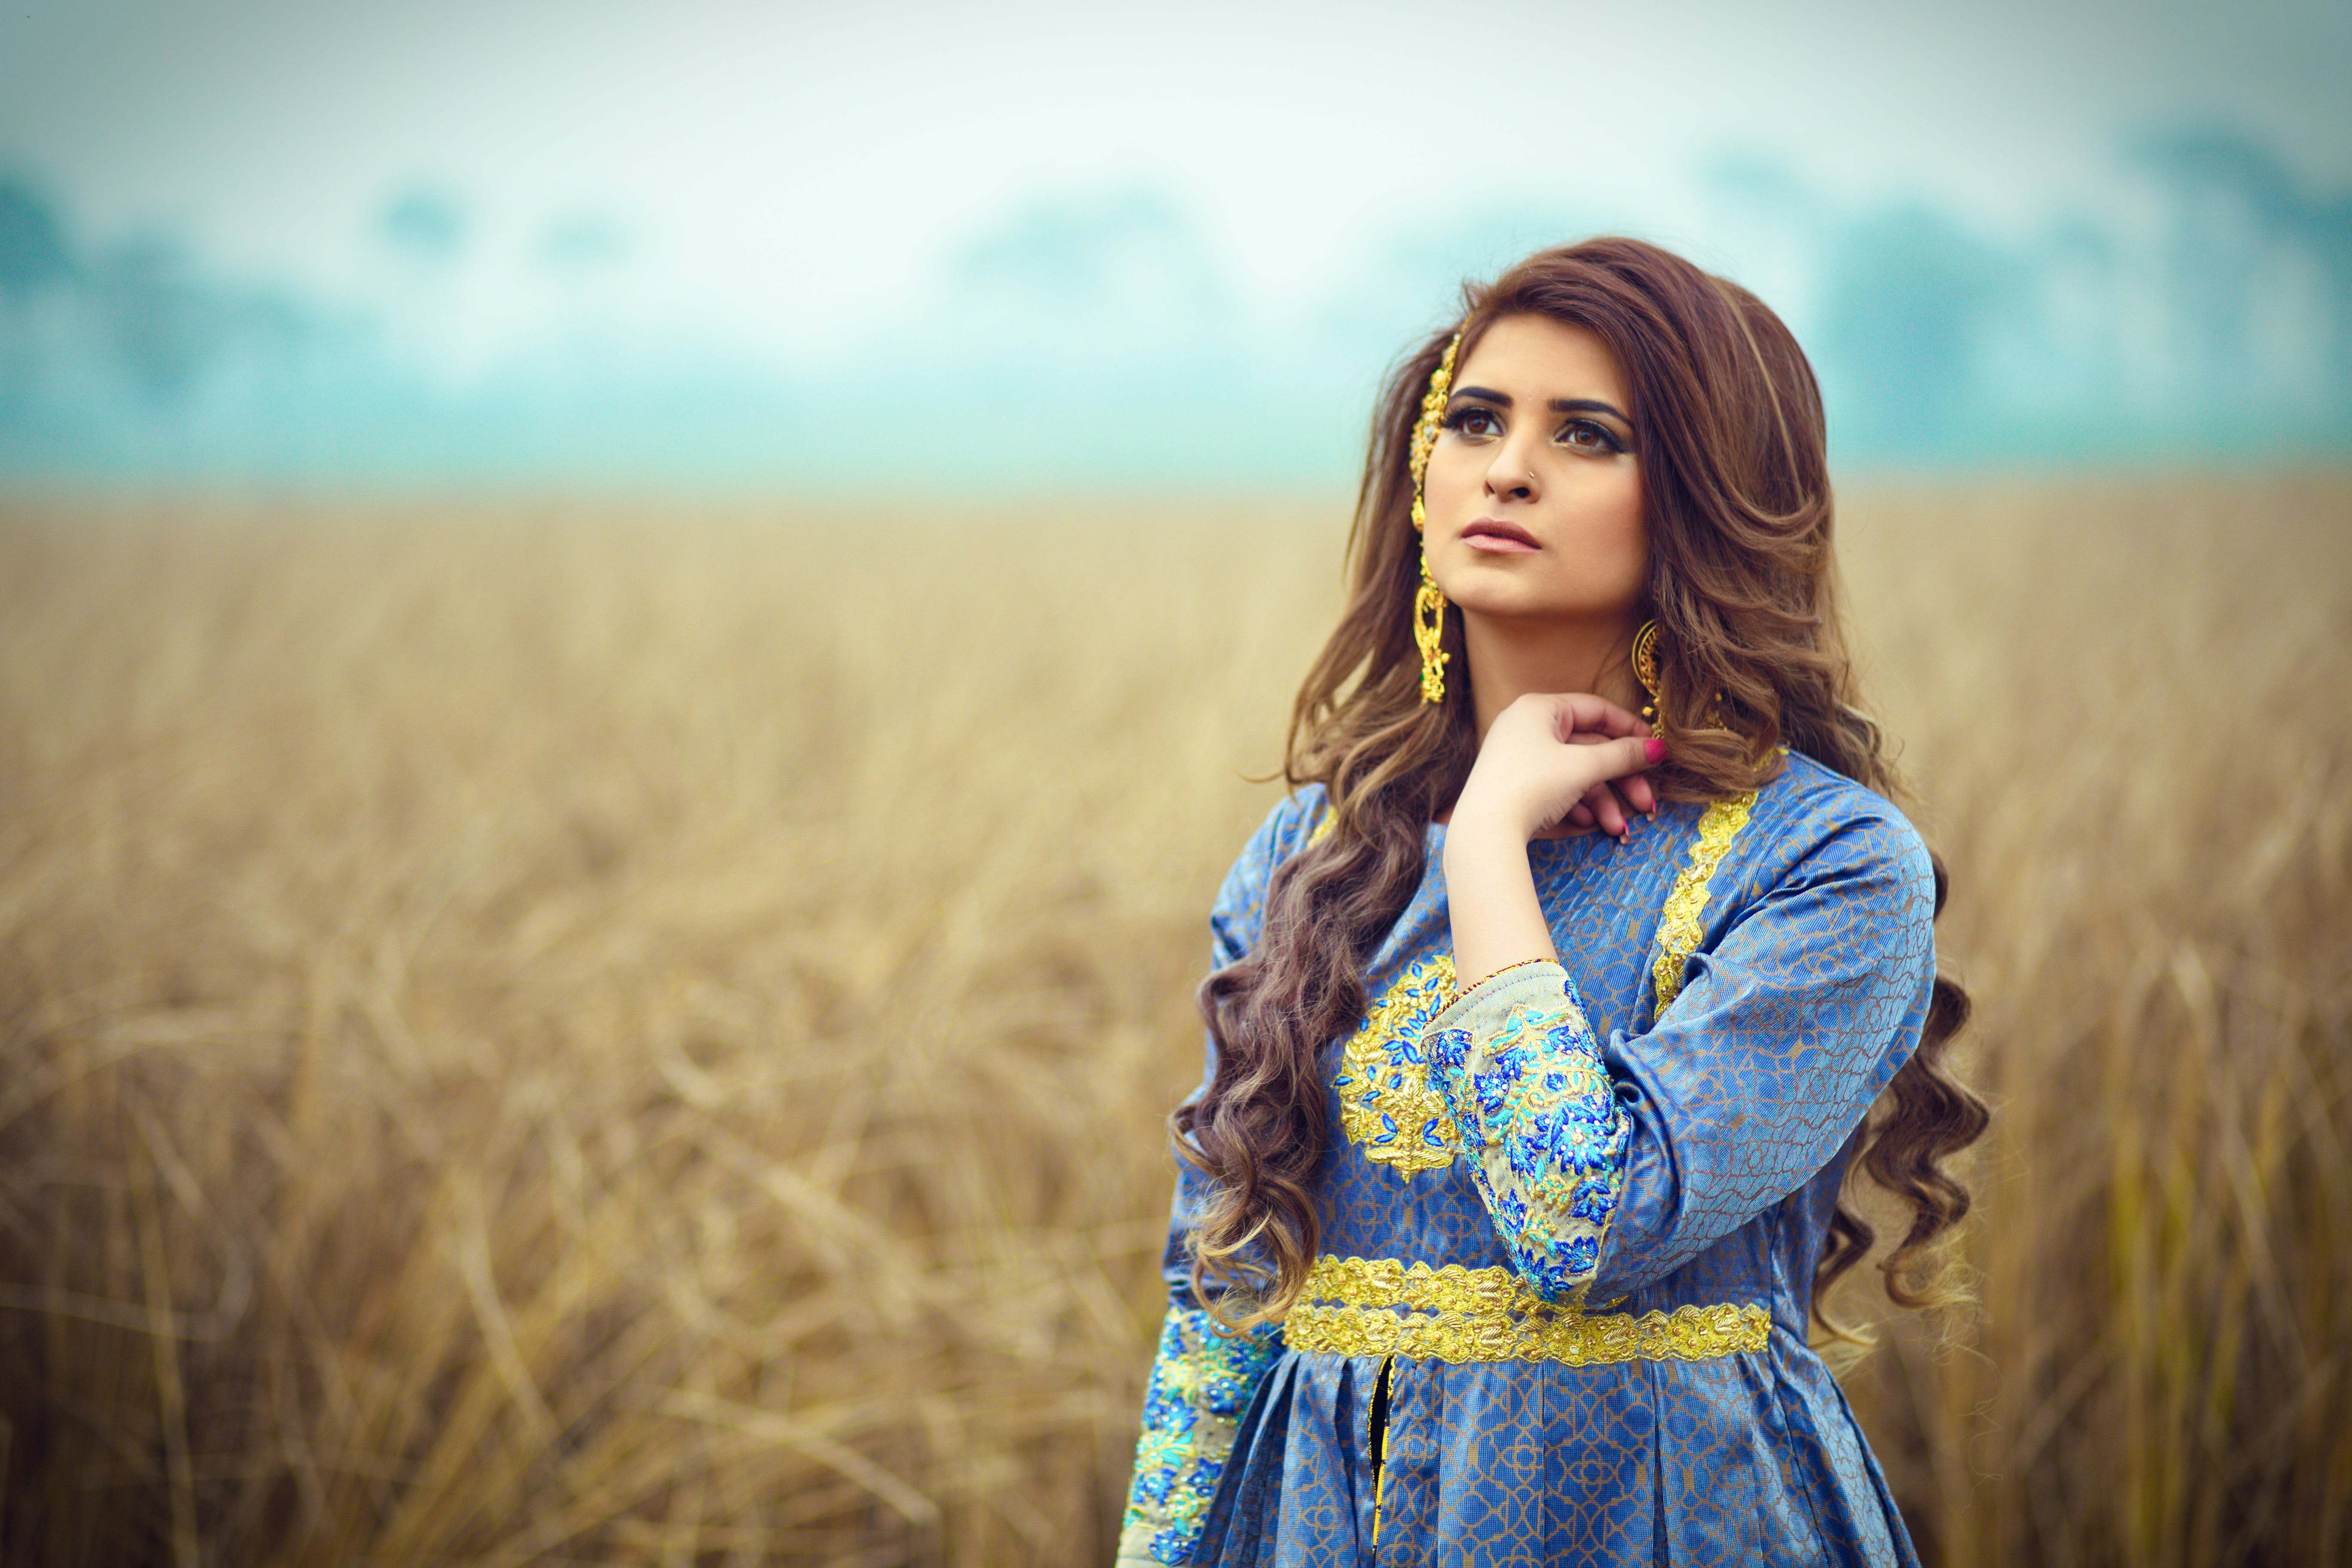 Brunette Haired Woman in Blue Dress Stranding in an Open Field